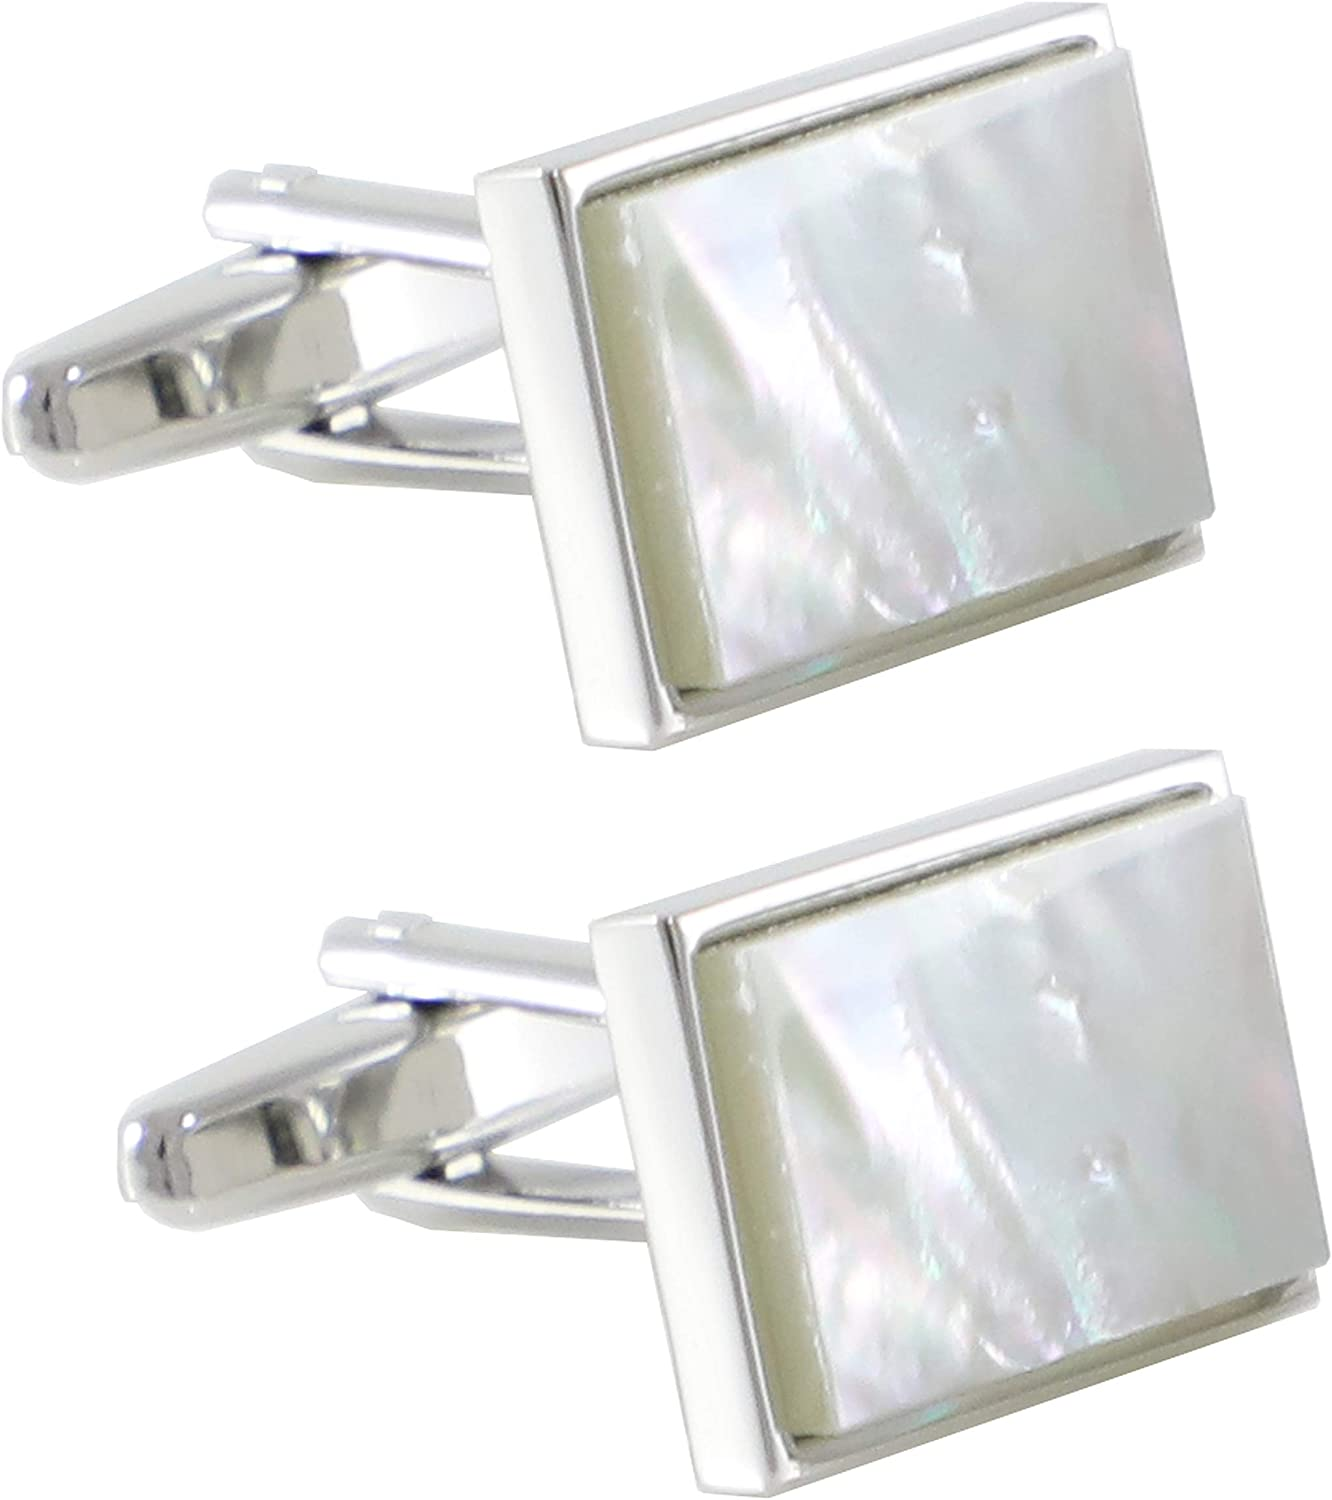 MENDEPOT Mother of Pearl Cufflinks with Box Men Classic White Stone Cuff Links Wedding Groom Gift